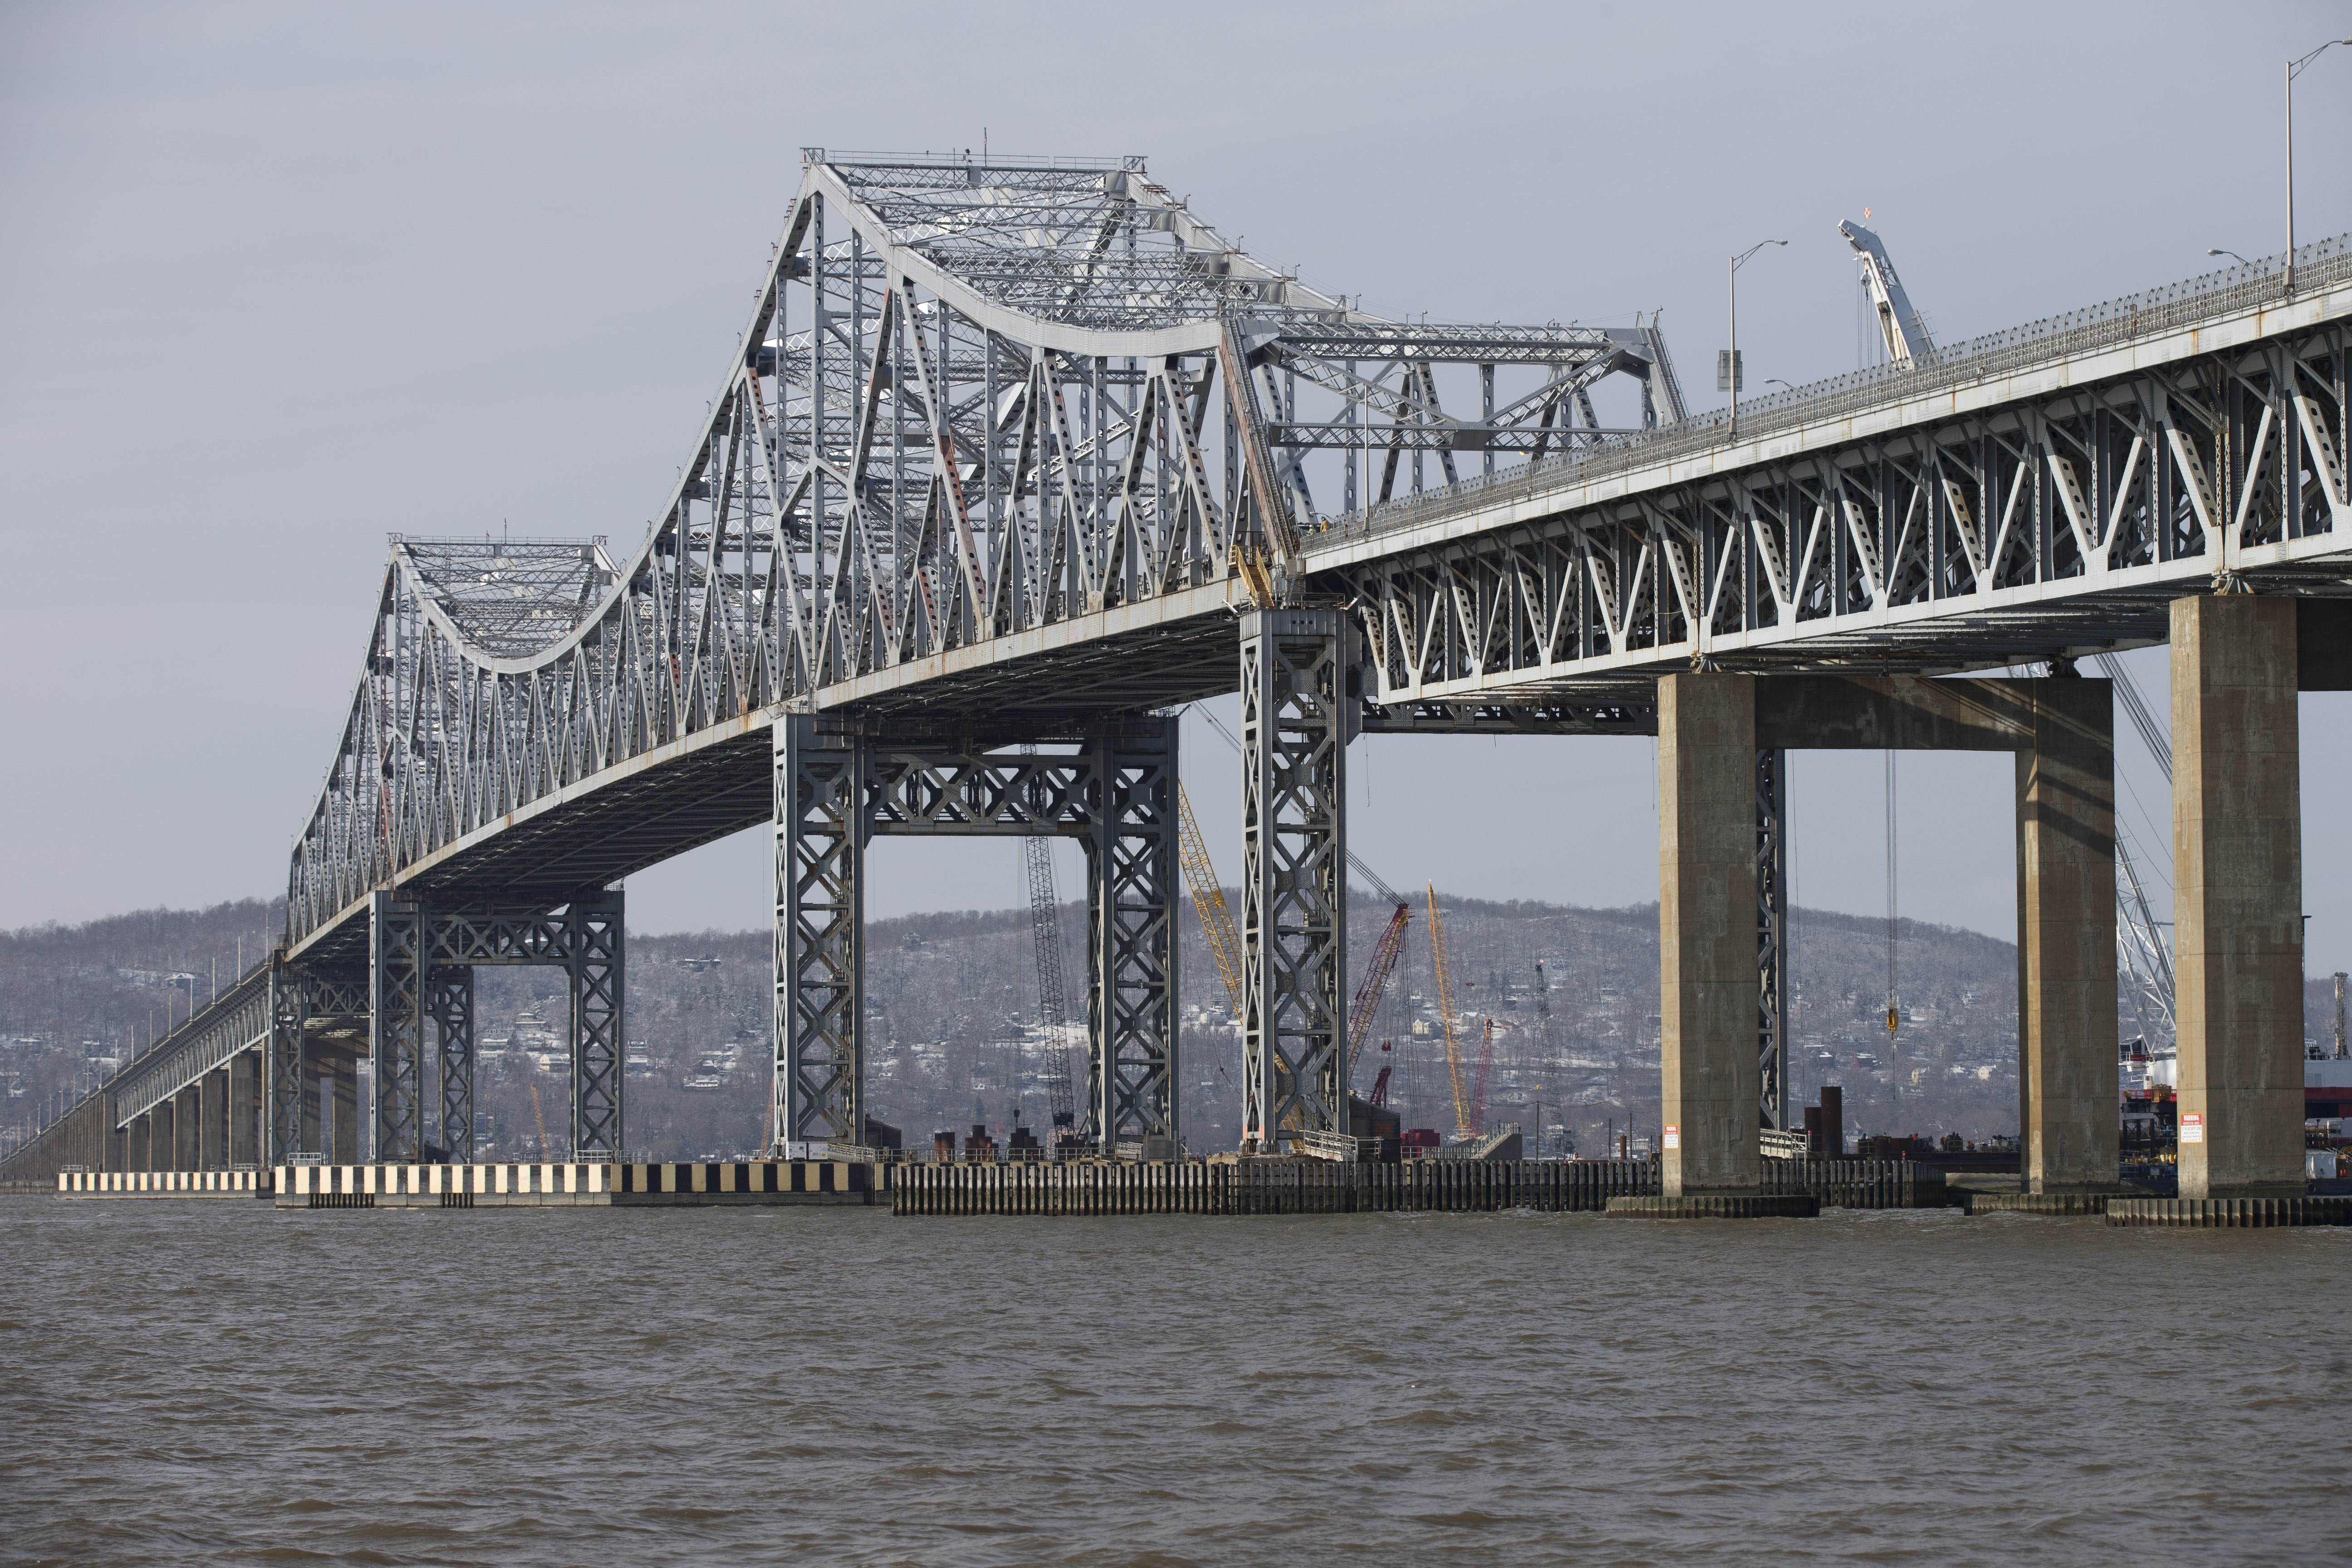 Preliminary work began on the replacement for the deteriorating Tappan Zee Bridge before the financing plan has been made public. (New York Times photo)